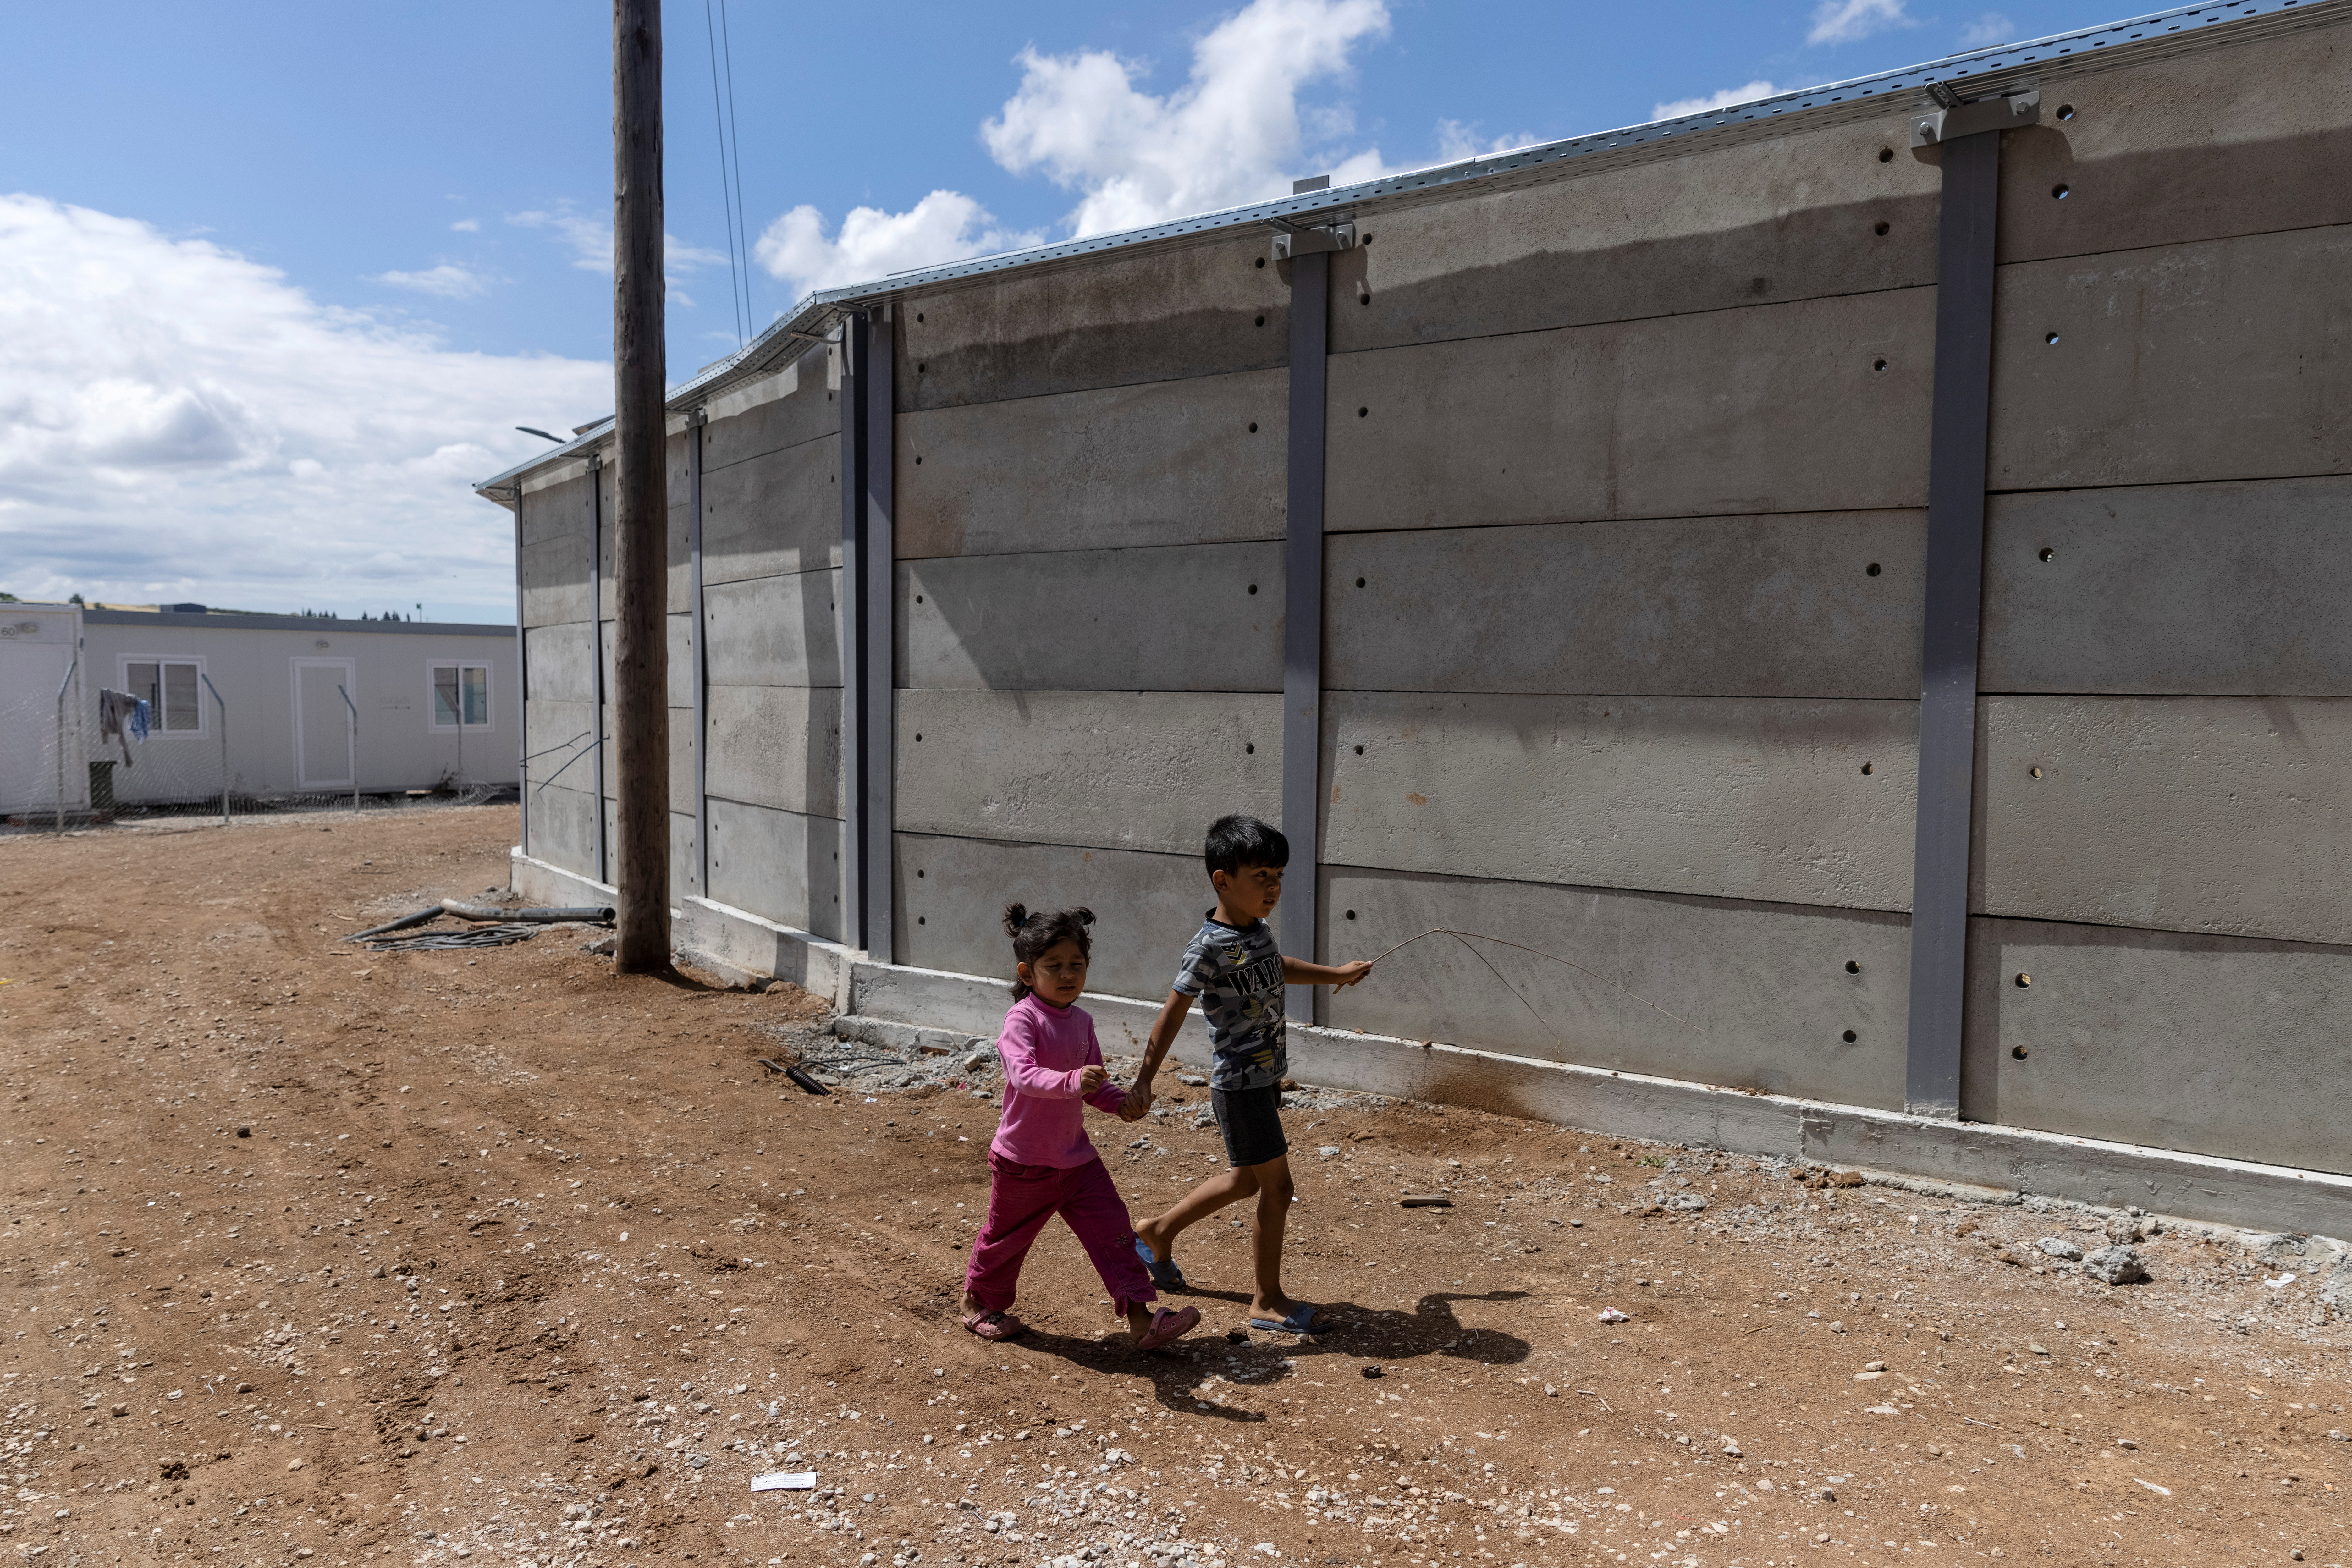 Children walk next to a newly built concrete wall inside the Ritsona camp for refugees and migrants, in Greece, June 15, 2021. REUTERS/Alkis Konstantinidis